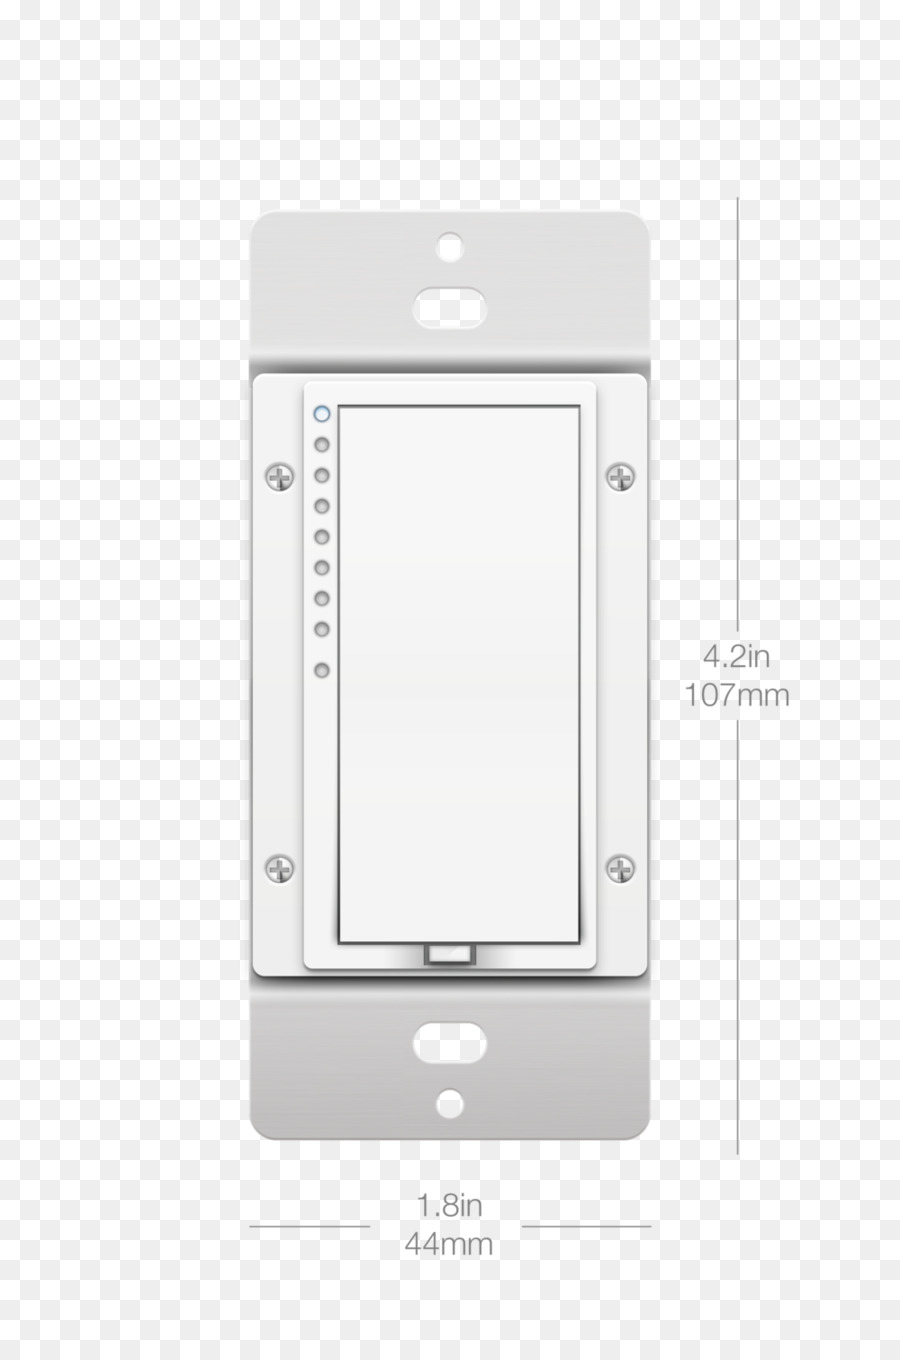 Latching Relay Electrical Switches Dimmer Electronics Insteon 4 Way Wiring Diagram Switch